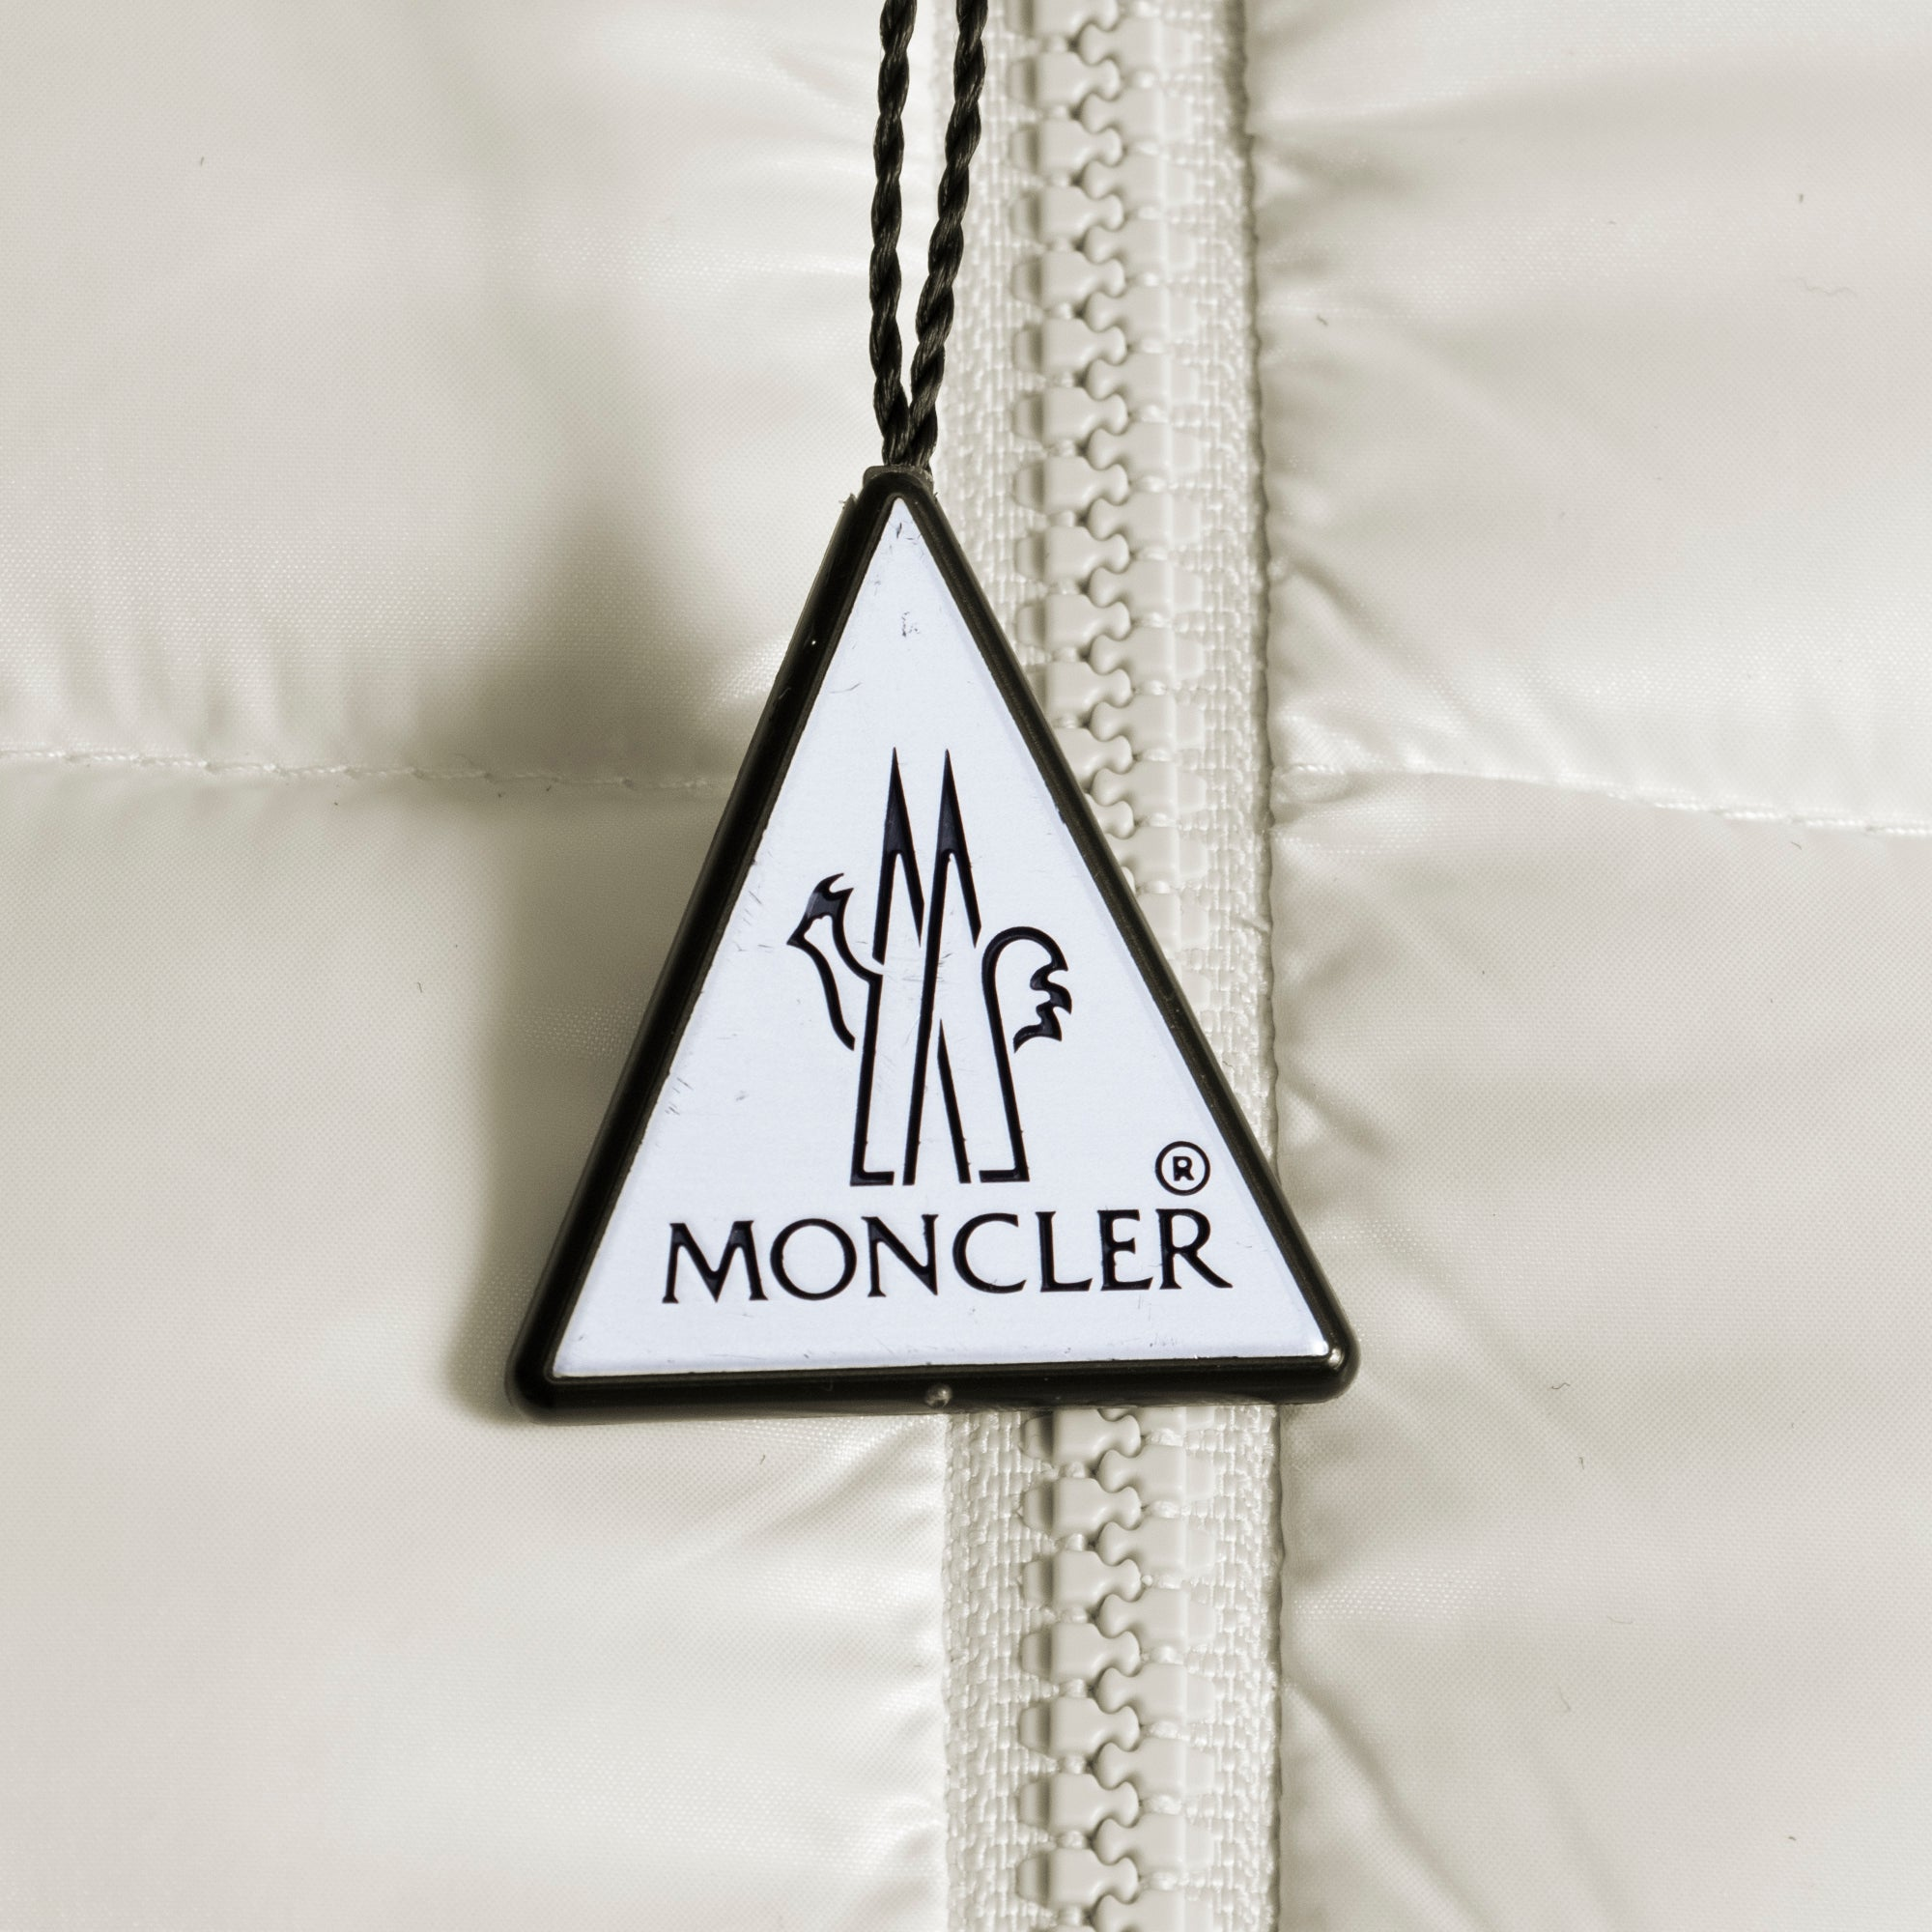 Moncler Badyfur Quilted Down Puffer Jacket Size 3 in White